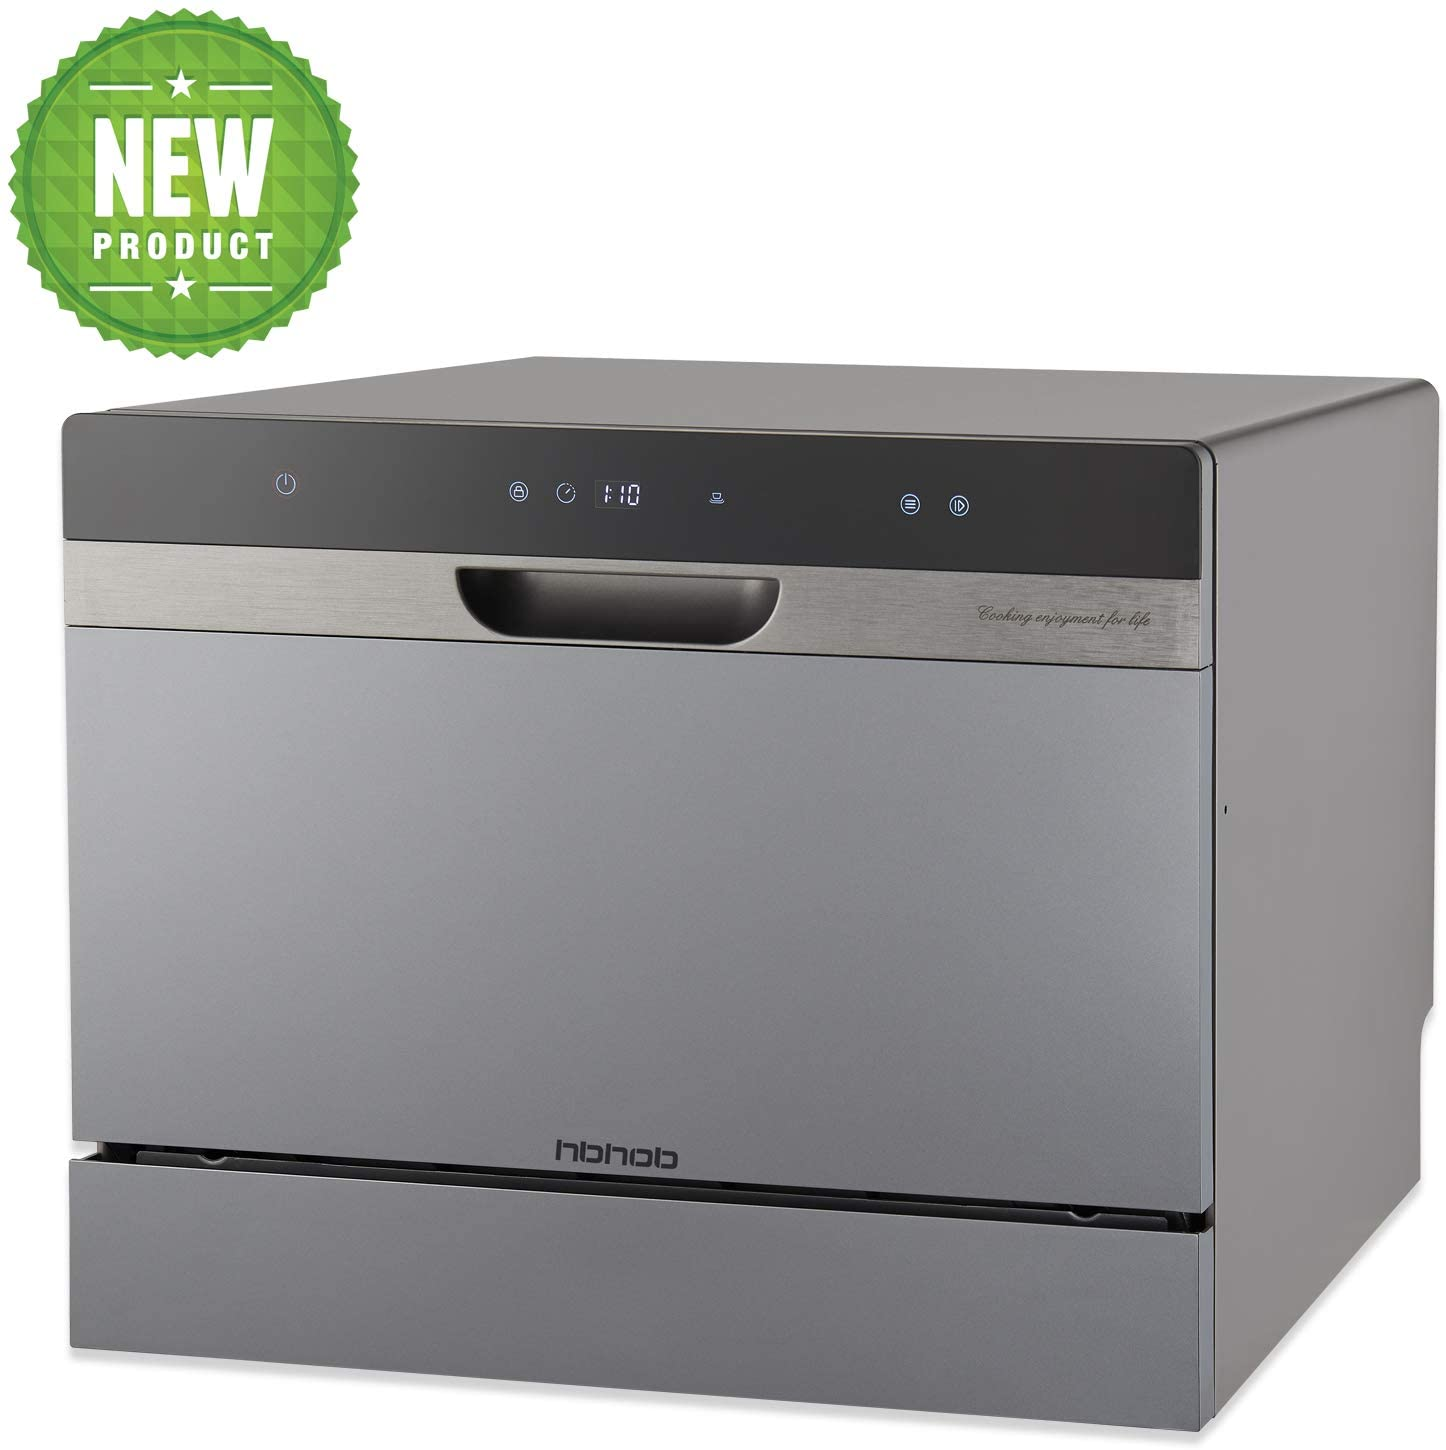 HBHOB Countertop Dishwasher